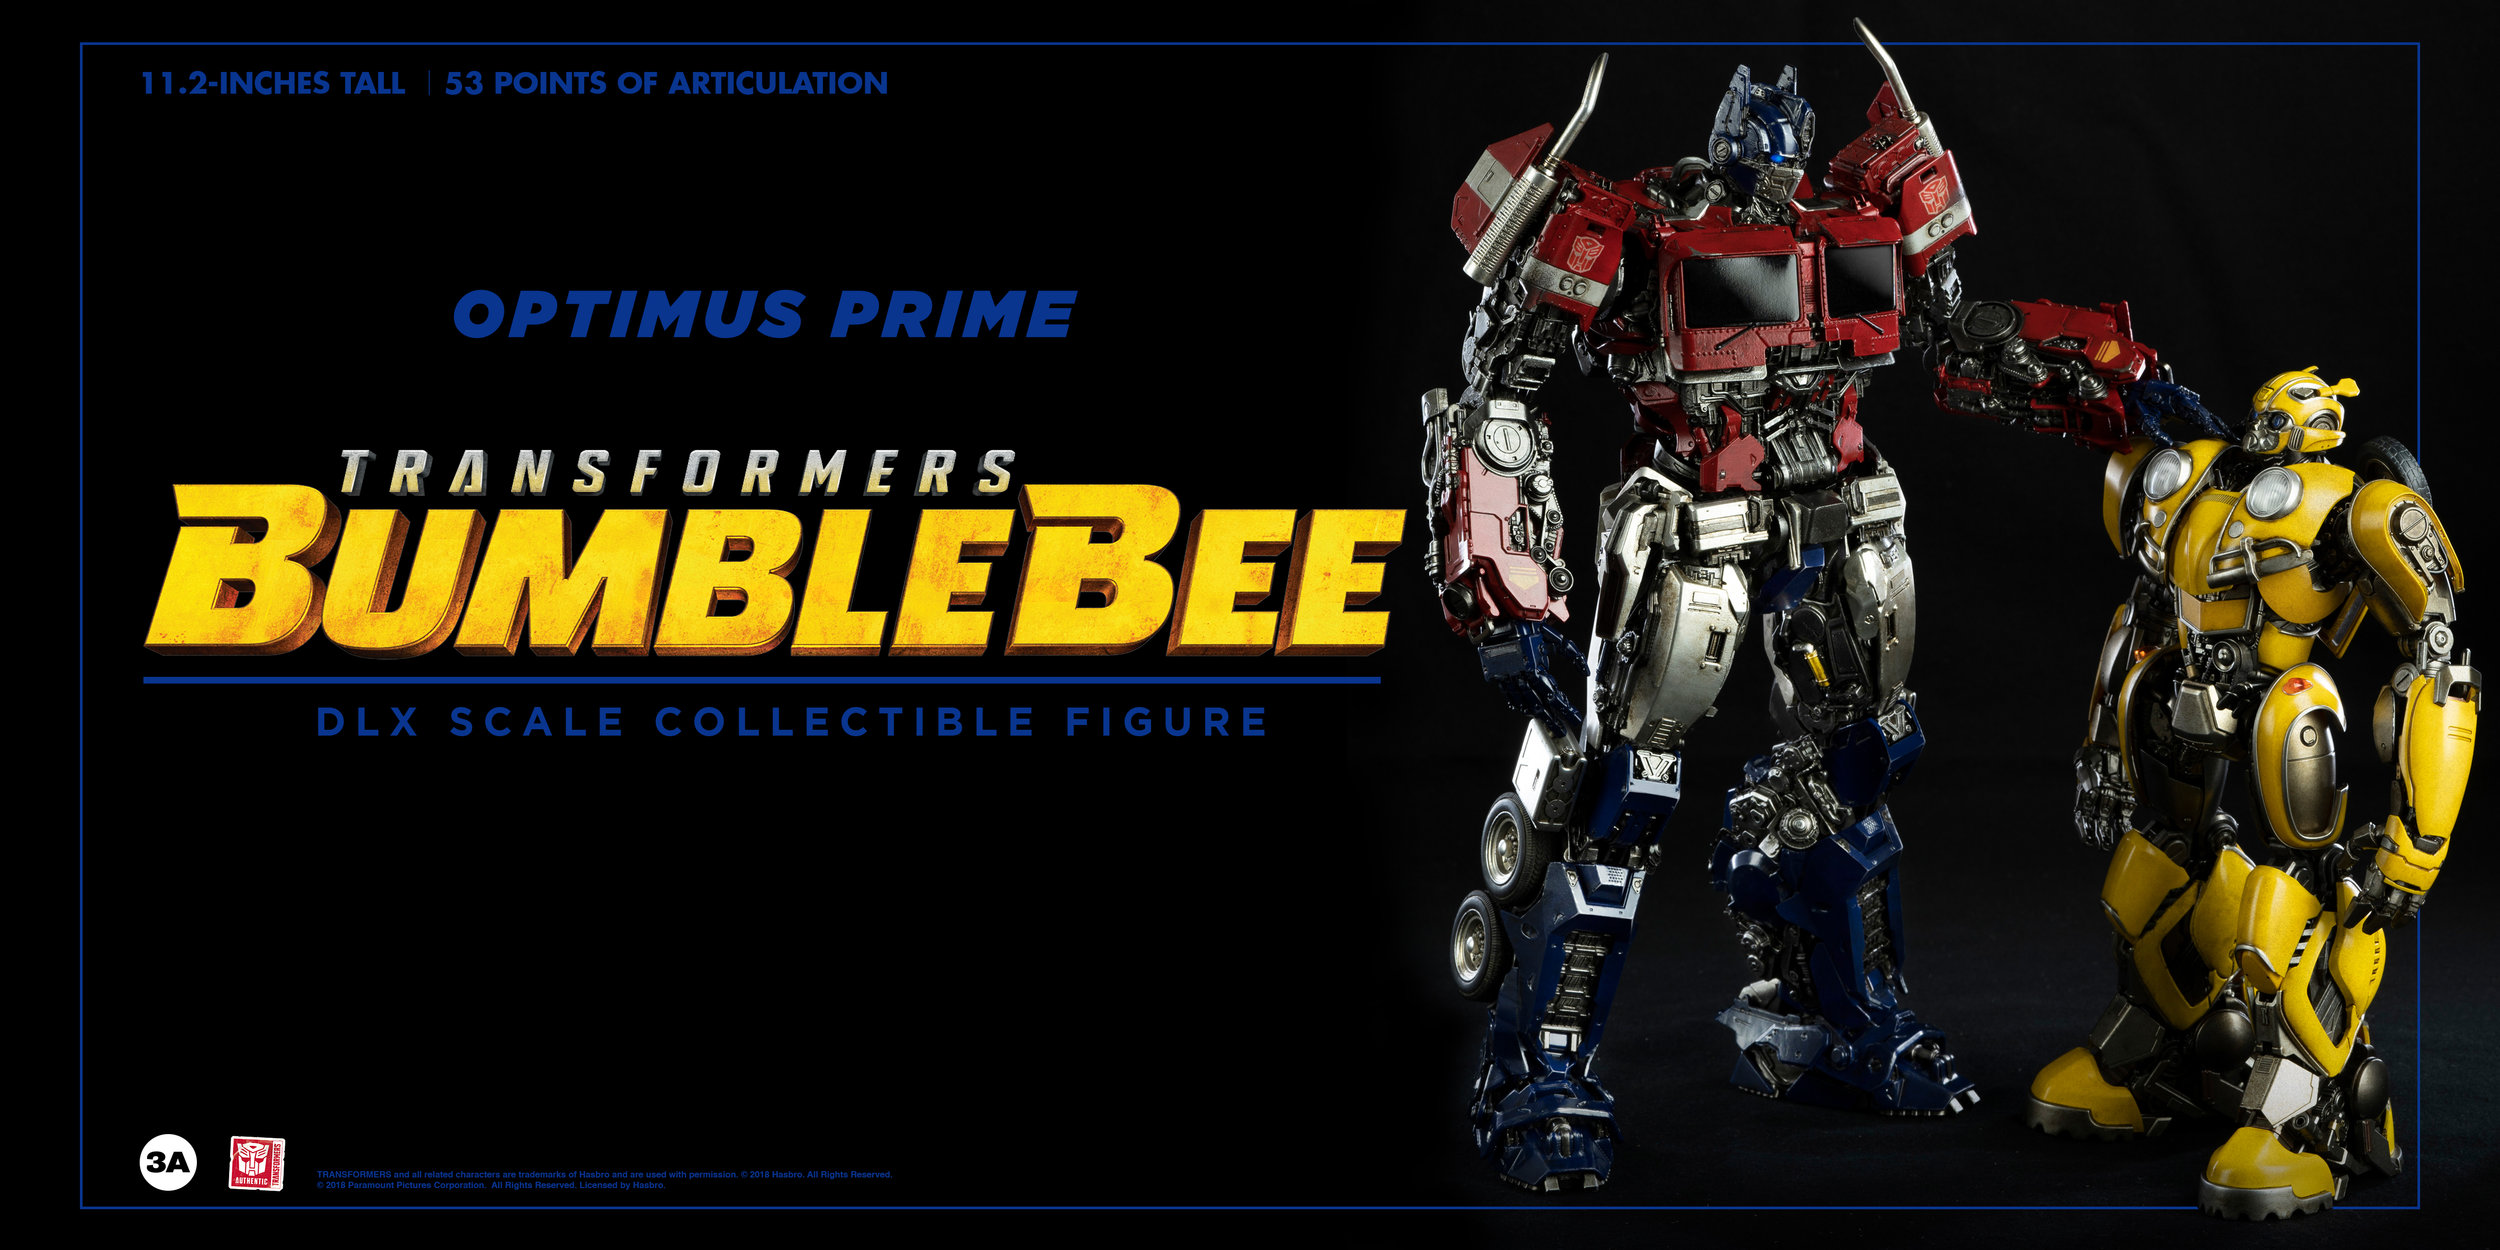 Transformers Bumblebee DLX and Premium Scale Collectible Figures  - Page 2 OP_DLX_ENG_w_6213